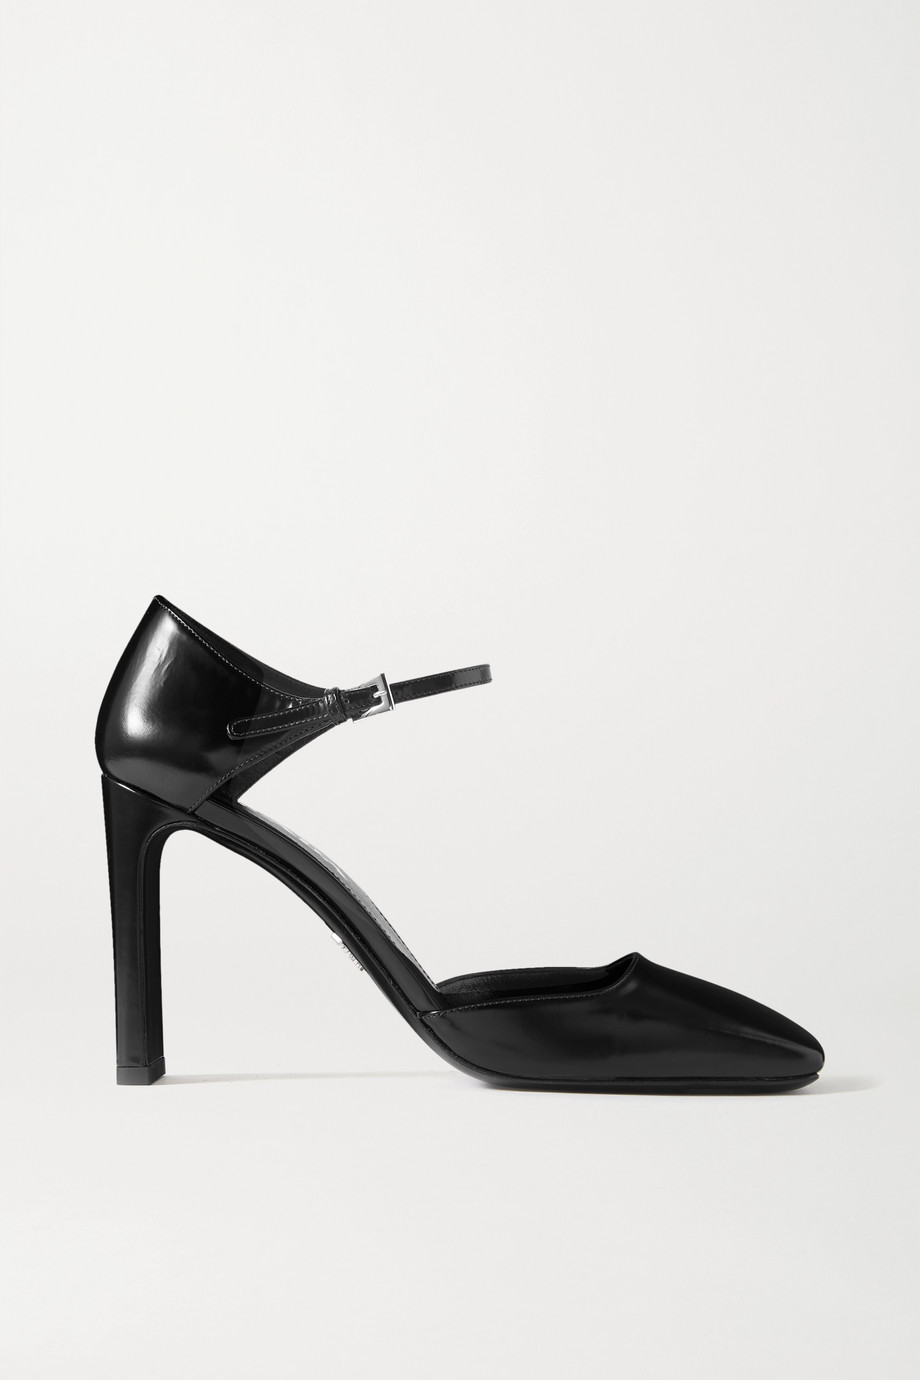 Prada 95 glossed-leather pumps